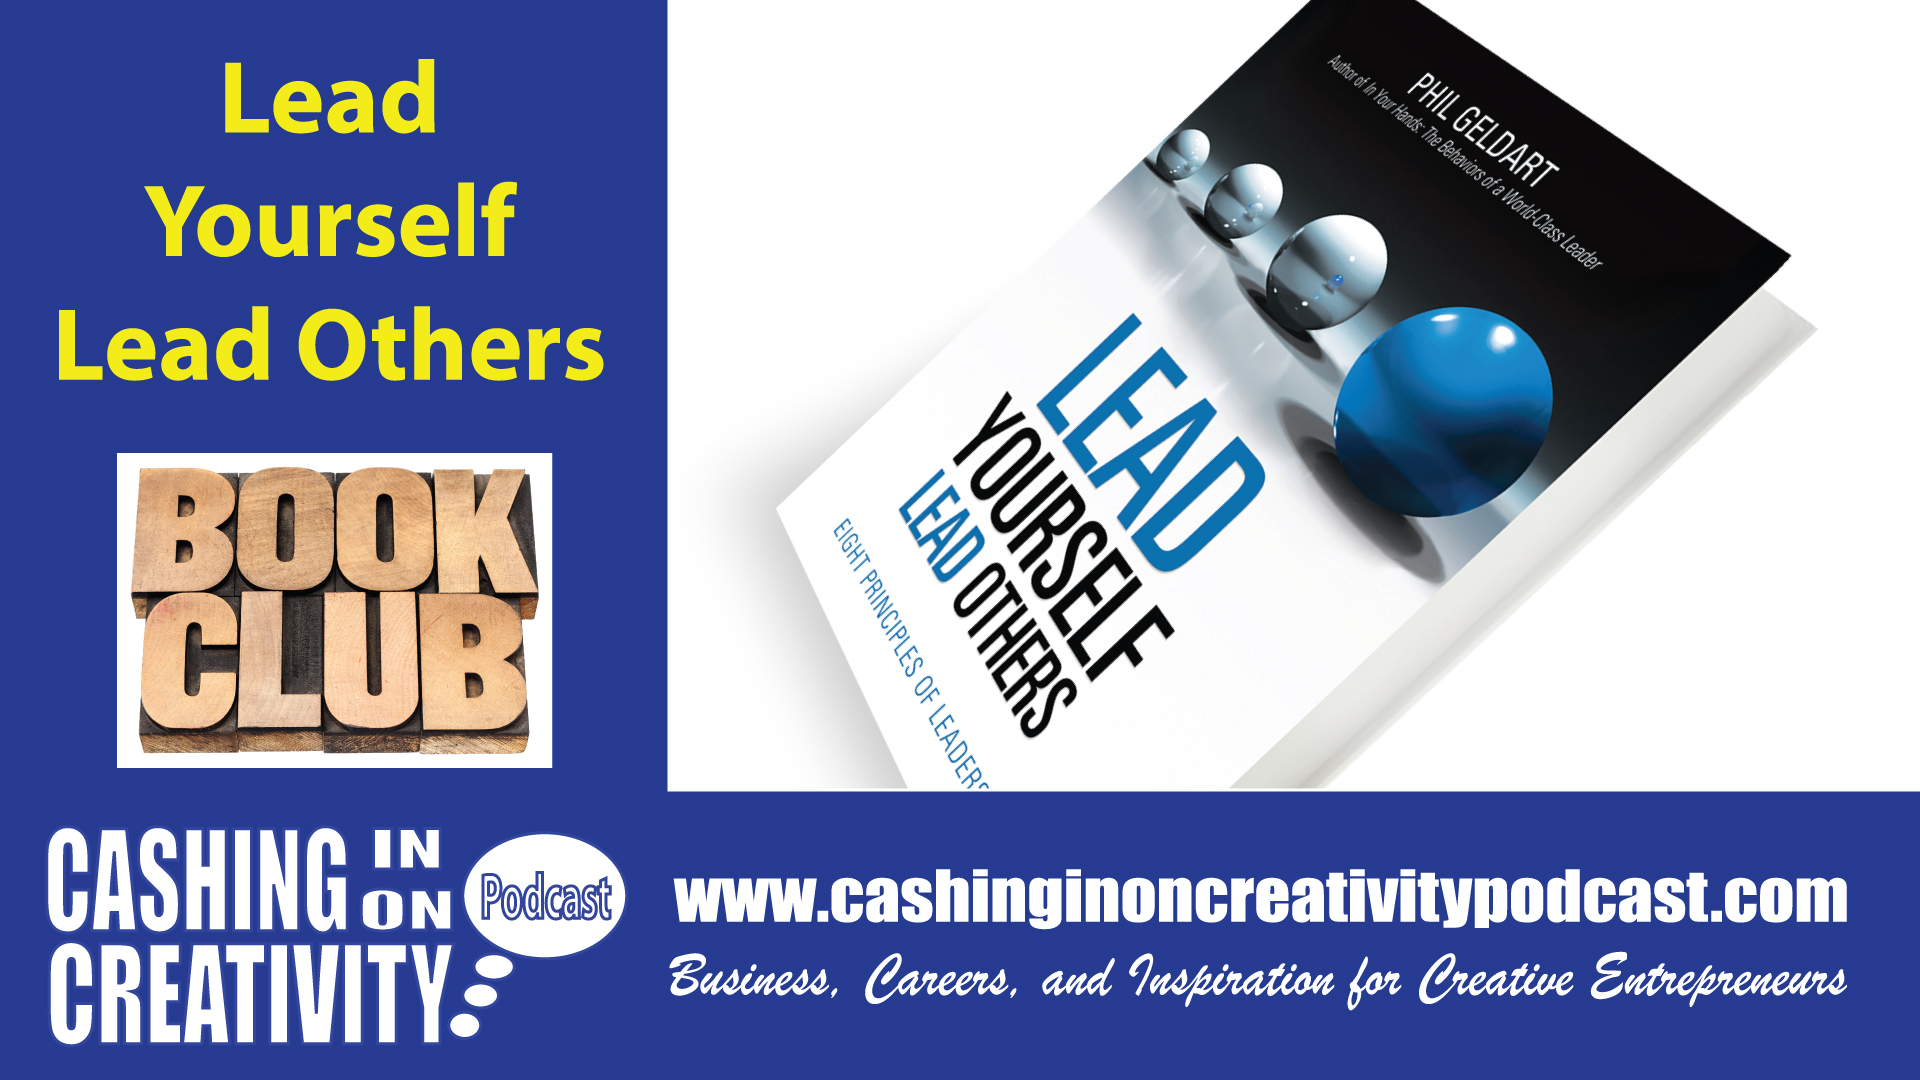 CC246 Lead Yourself-Lead Others: Book Club